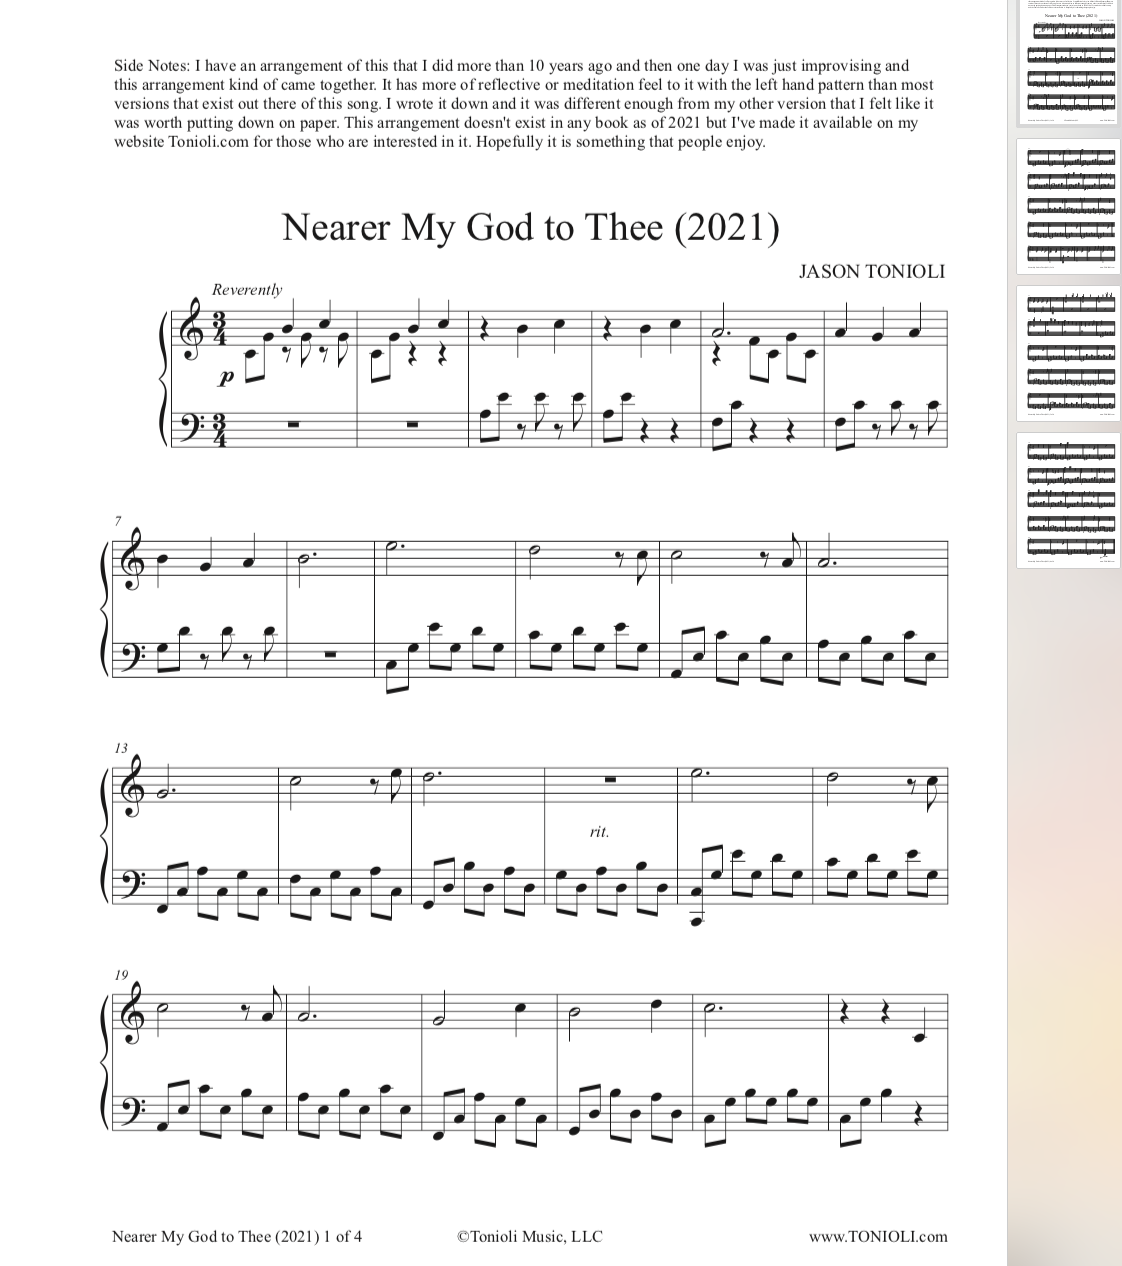 Nearer My God to Thee (2021 Arrangement) - Piano Solo Sheet Music